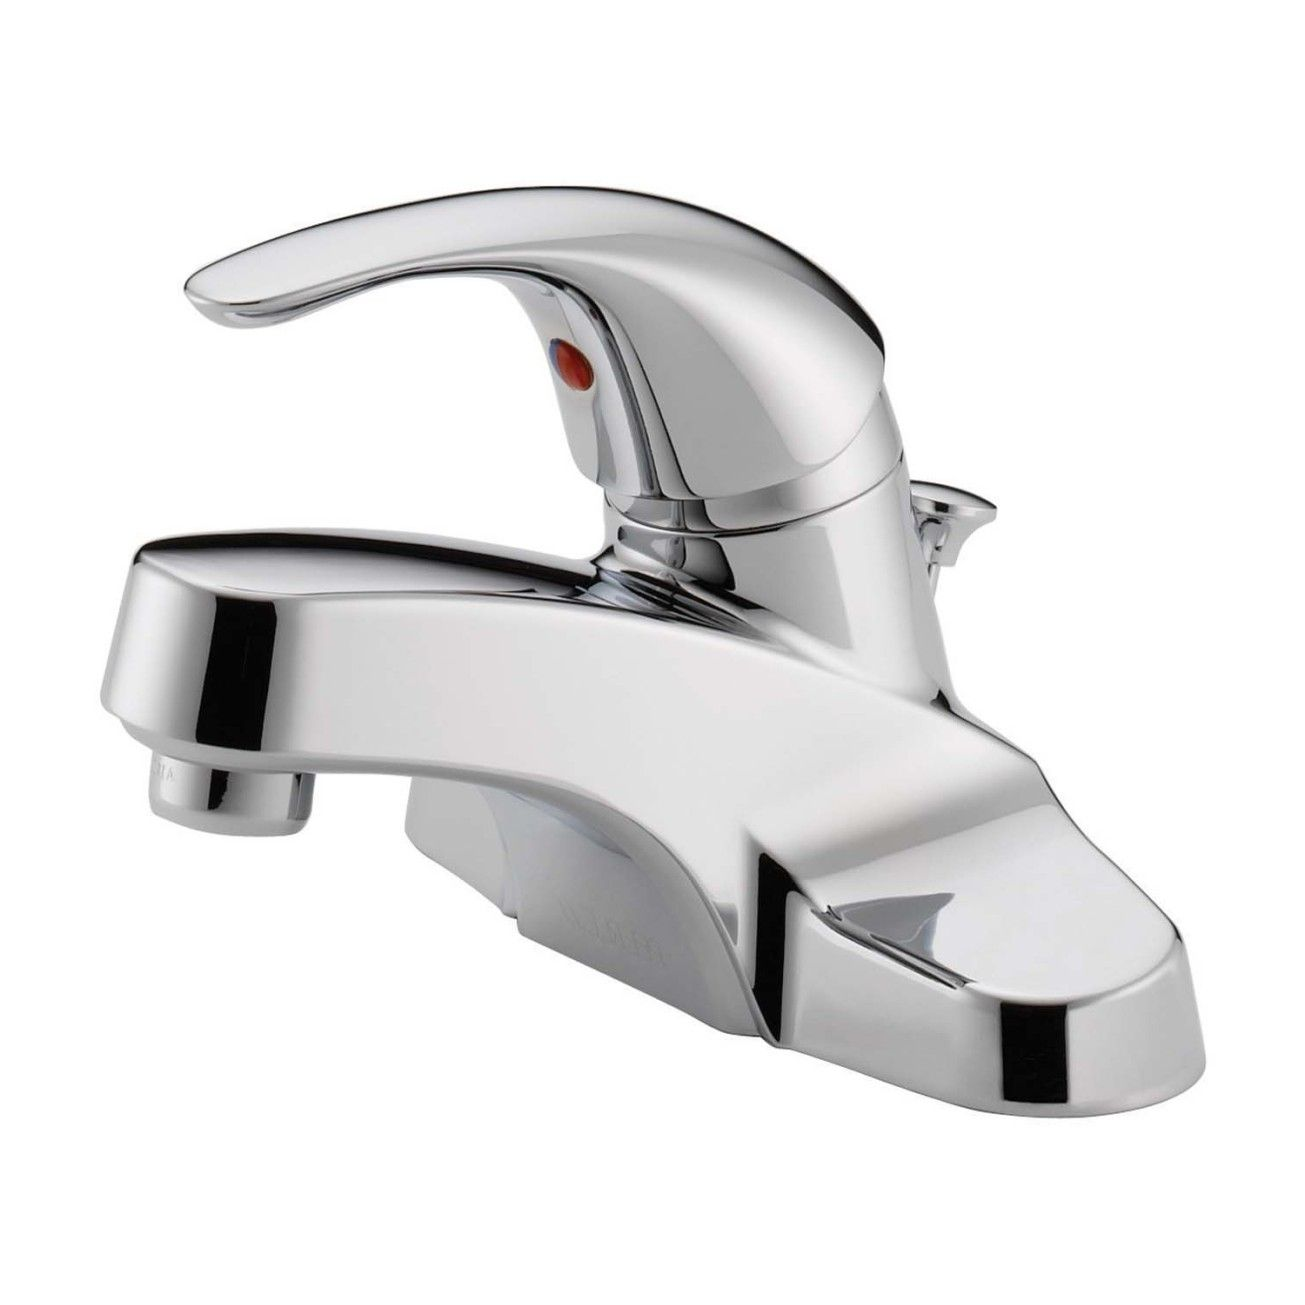 Bathroom Faucets And Sink Faucets At Ace Hardware From Bathroom Sink